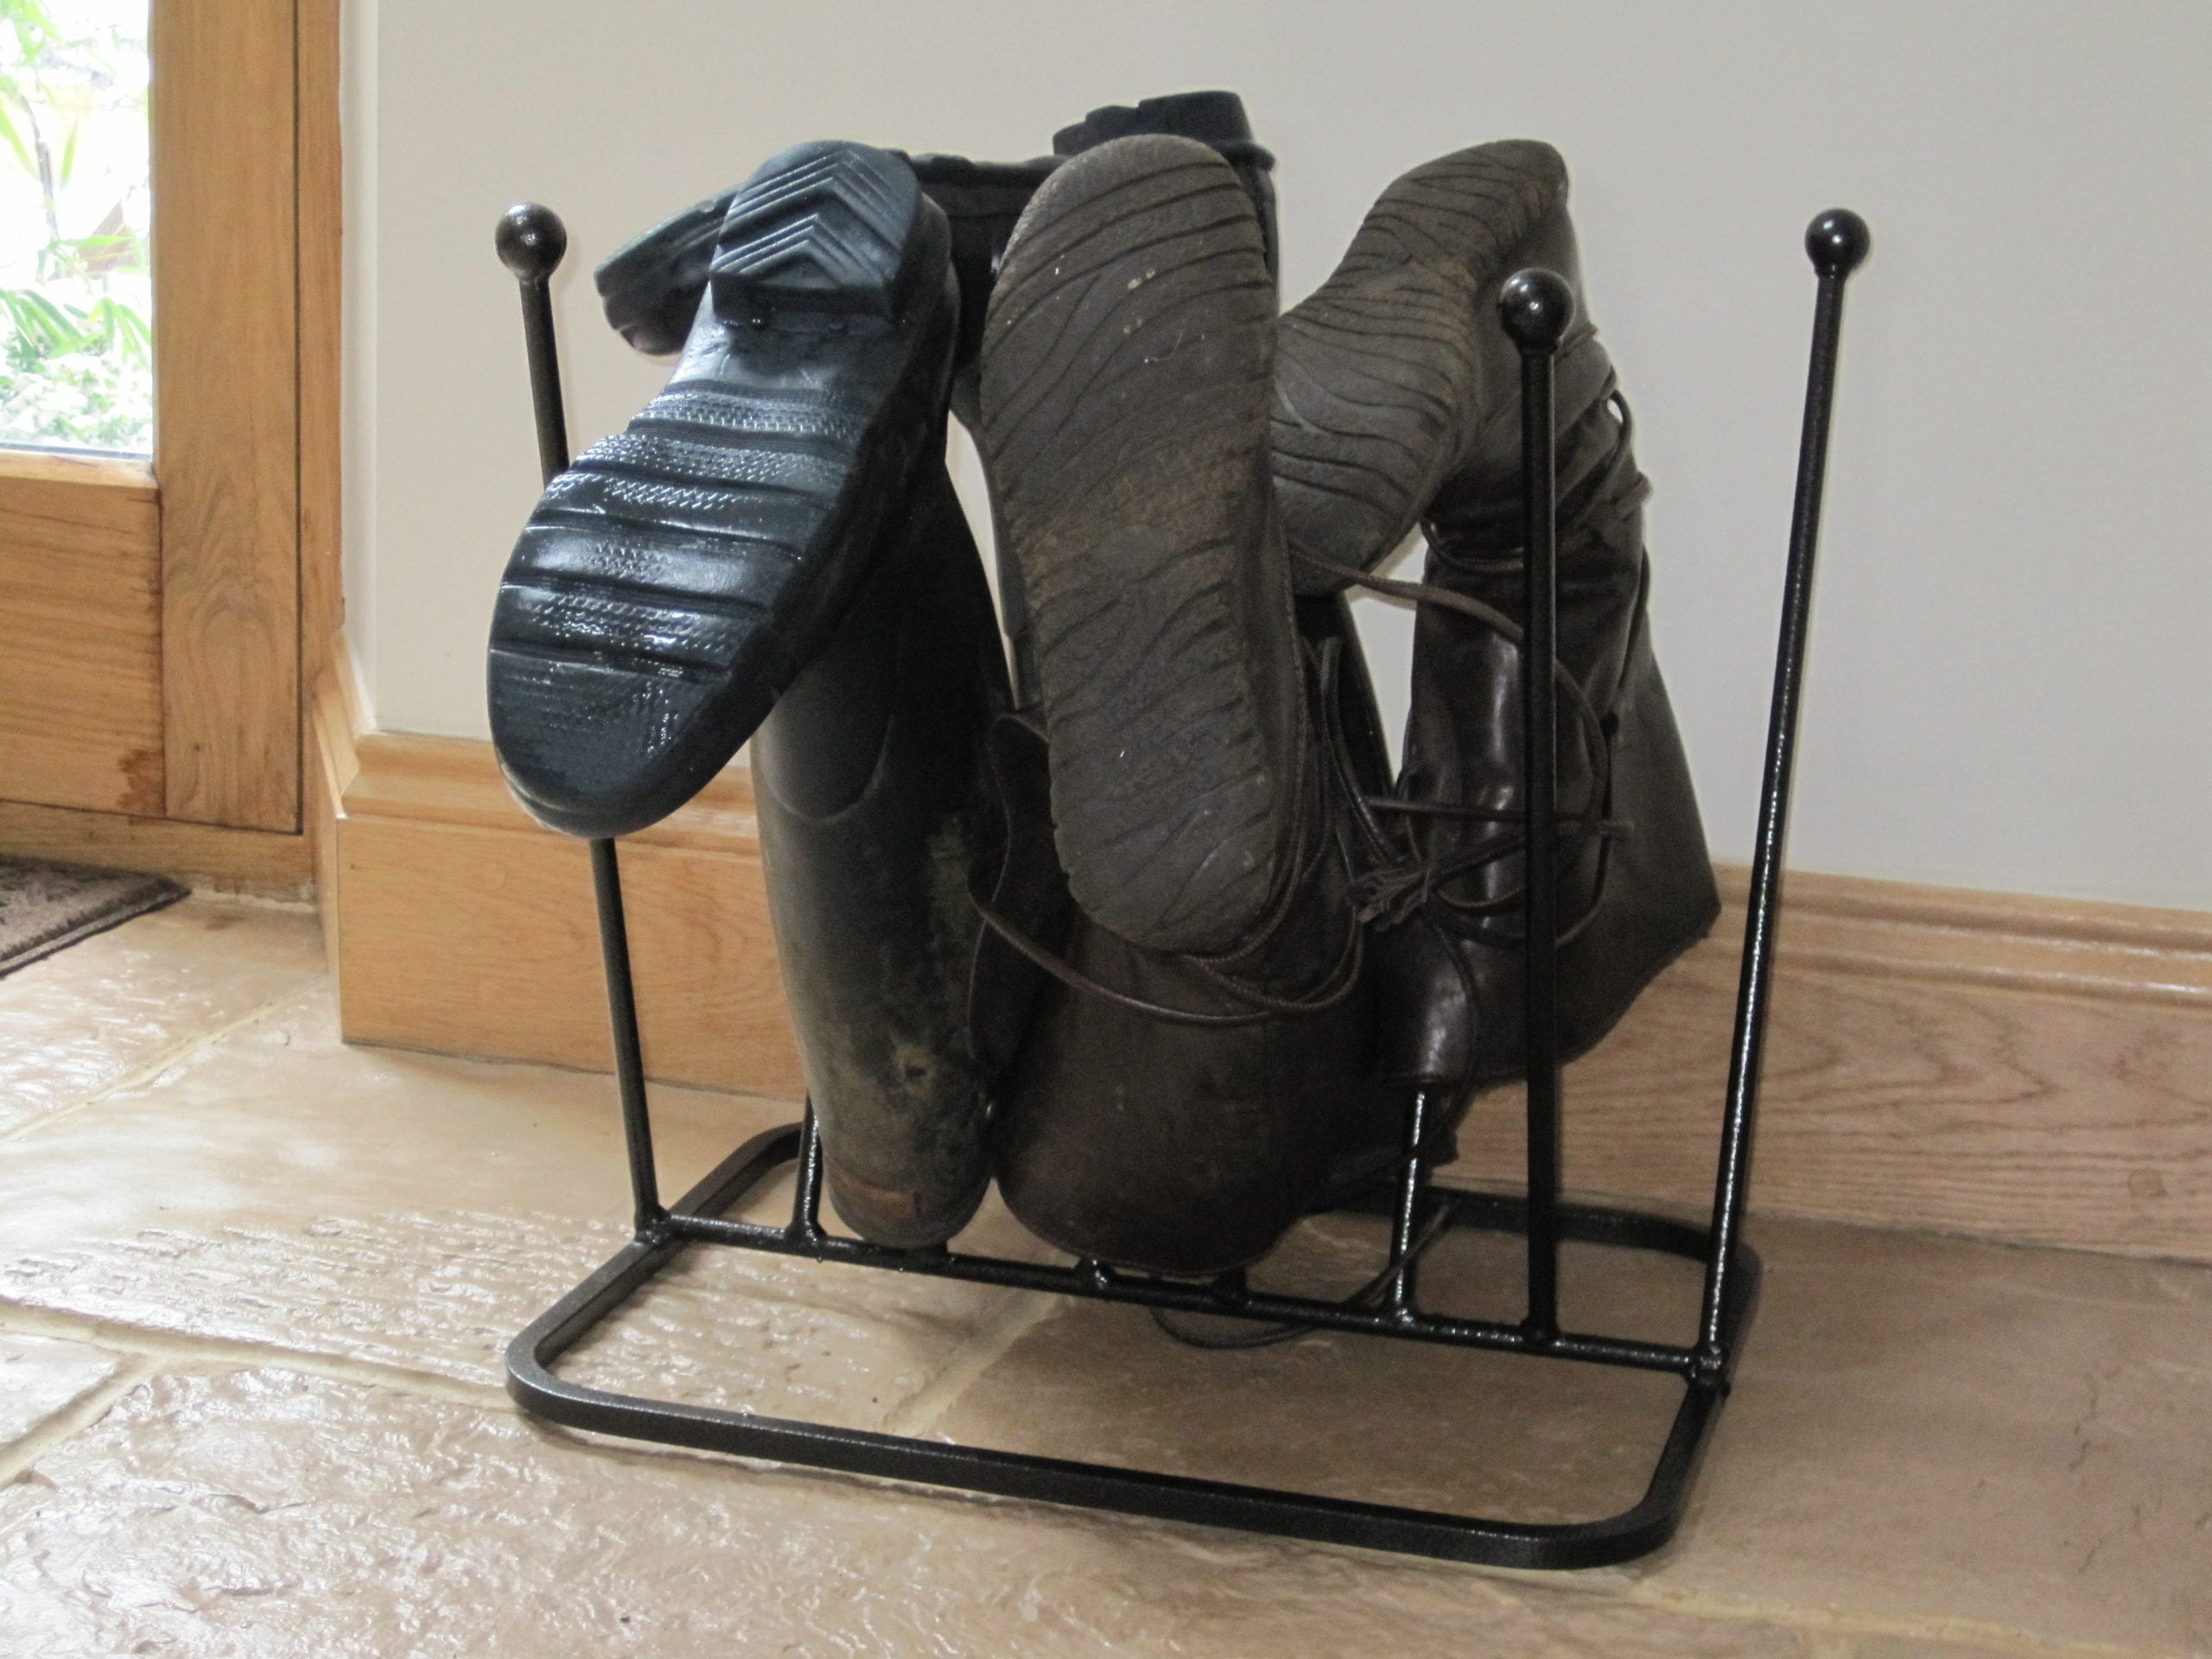 Boot rack for 5 pairs of wellingtons, black metal